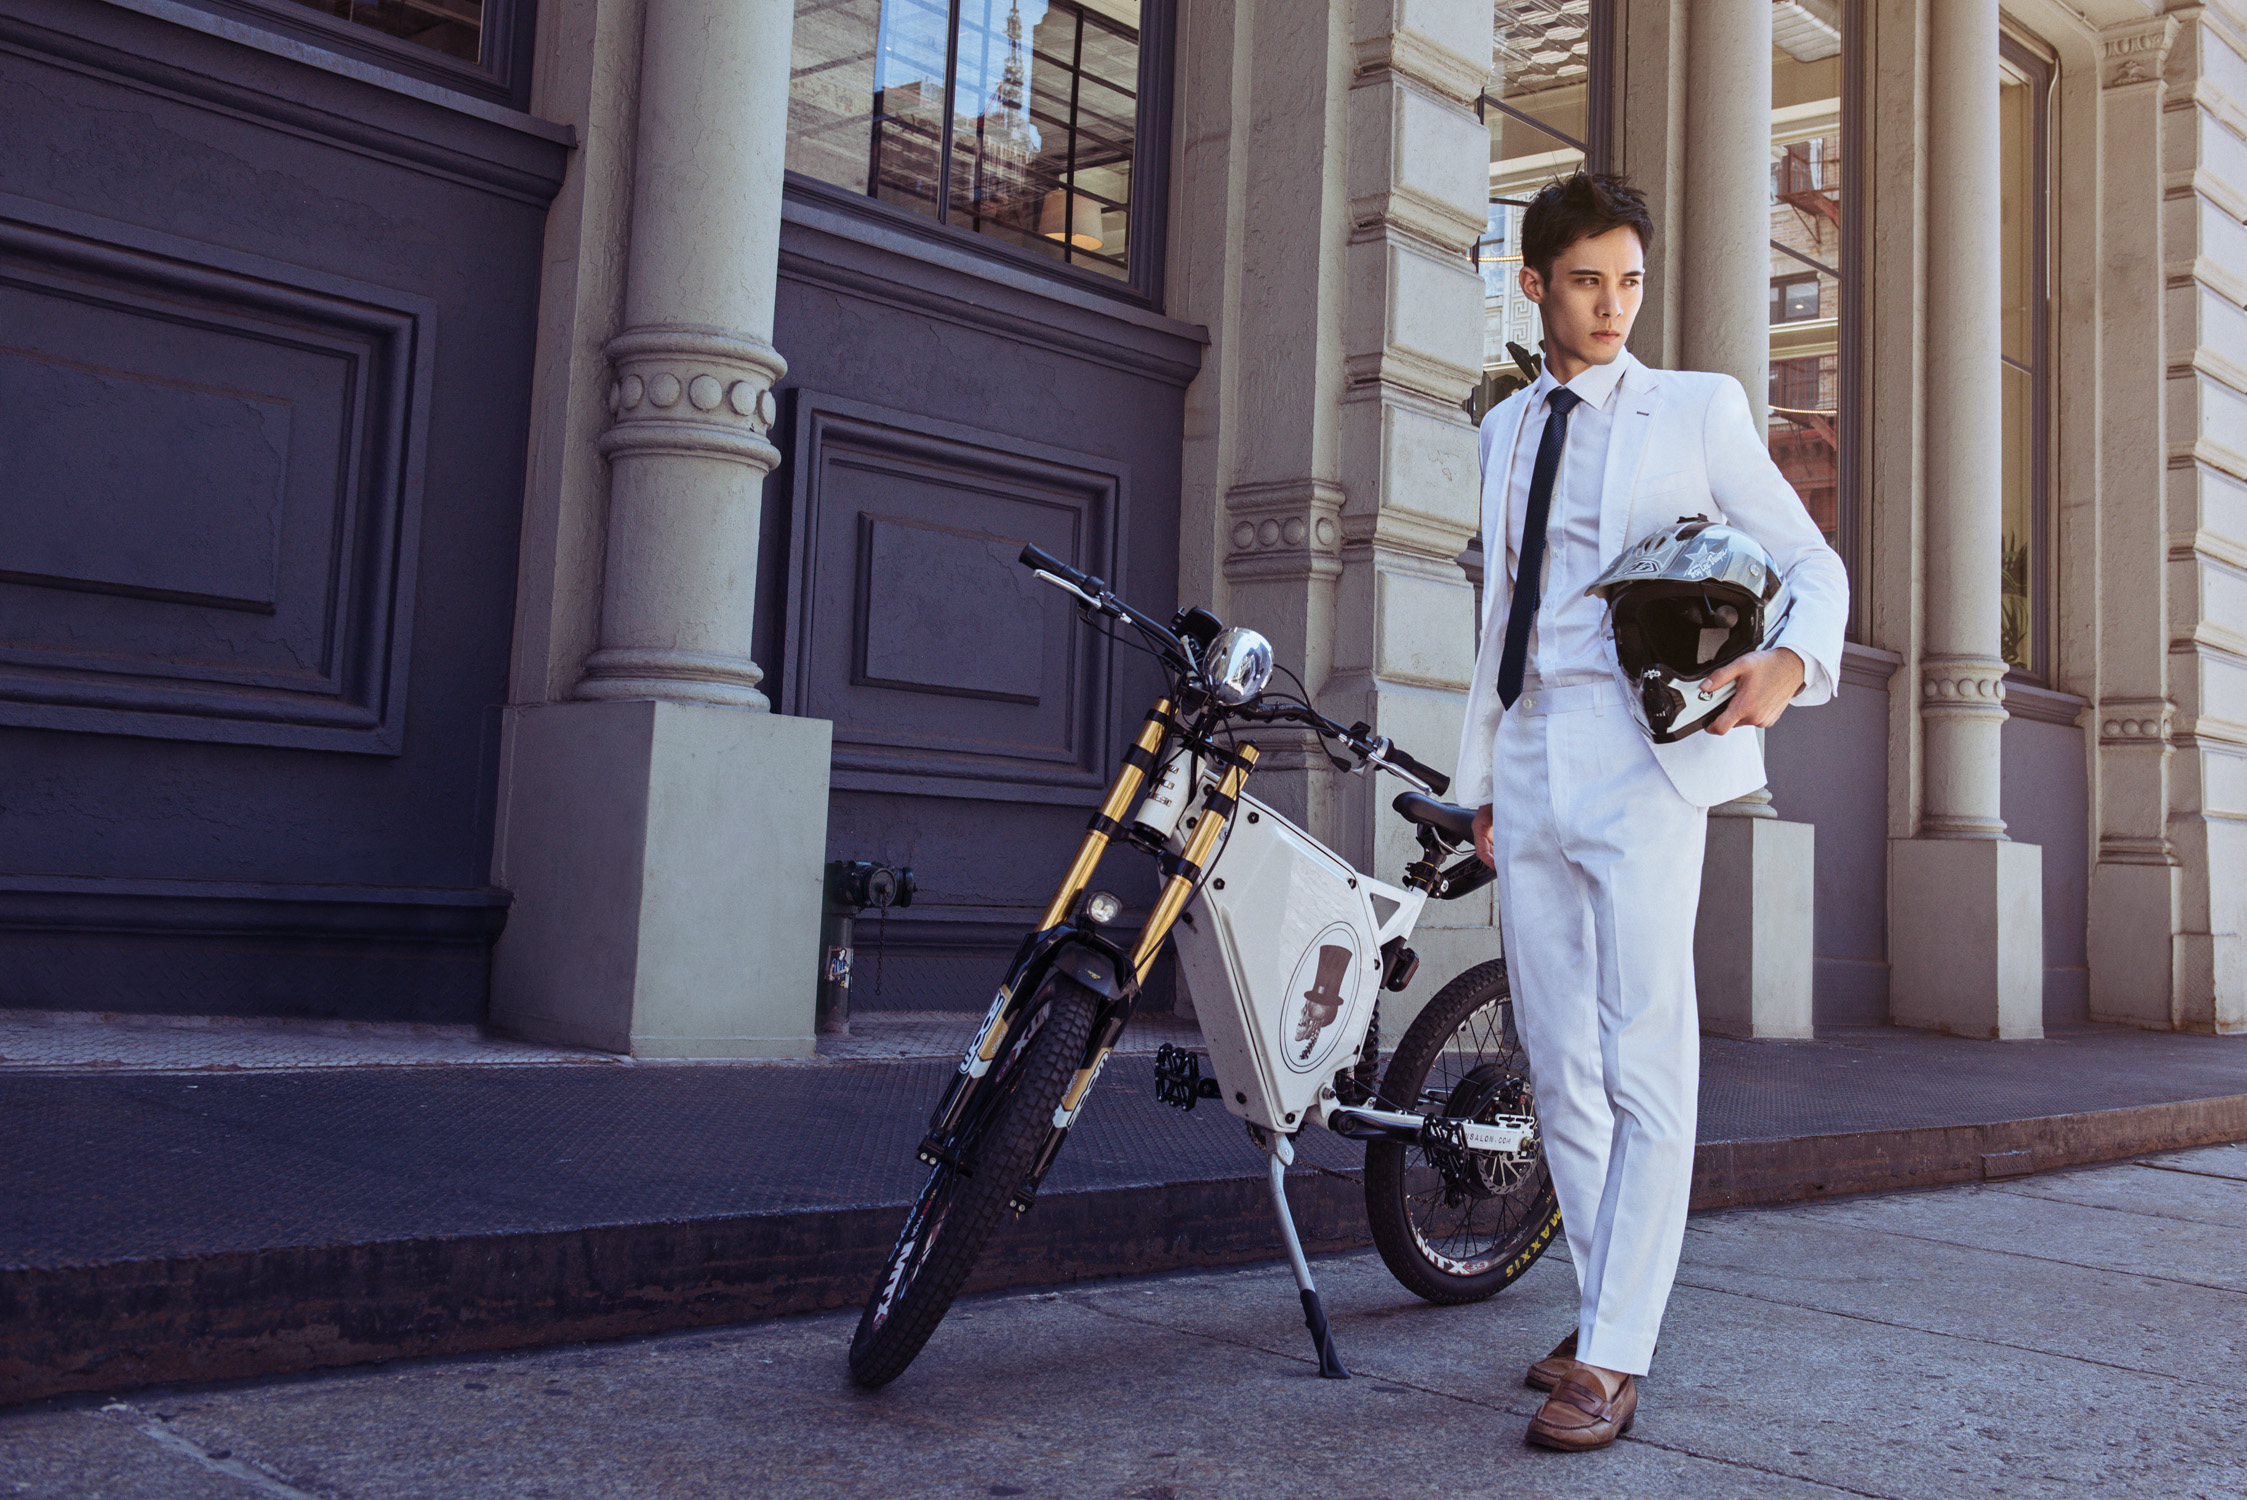 Custom-tailored essentials for the modern, working, man